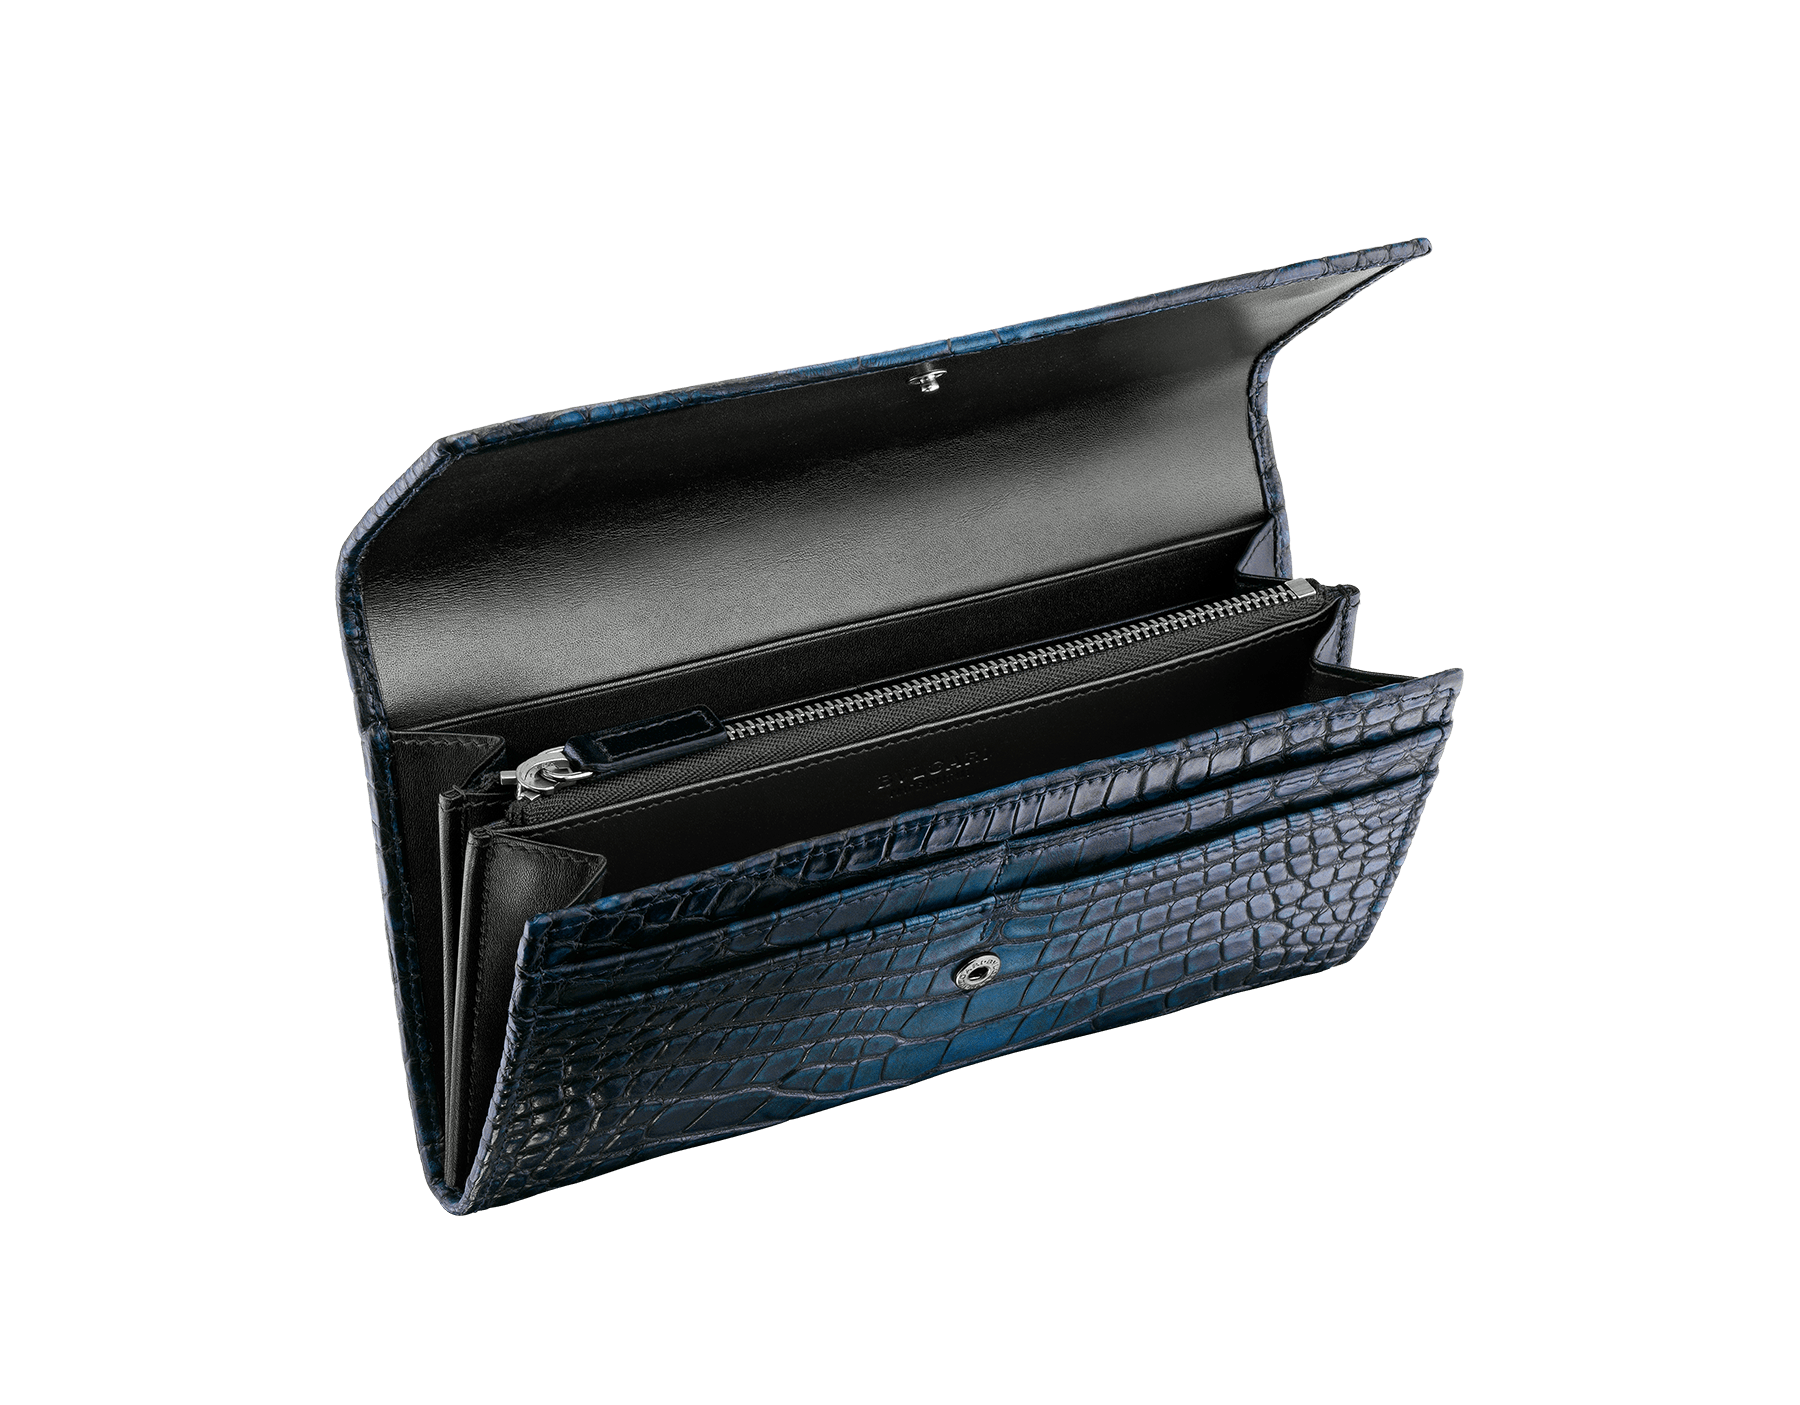 Man wallet pochette in Jungle green alligator skin and black smooth calf leather, with brass dark ruthenium plated hardware featuring the Bulgari-Bulgari motif. BBM-WLT-POC-10C-HE image 2